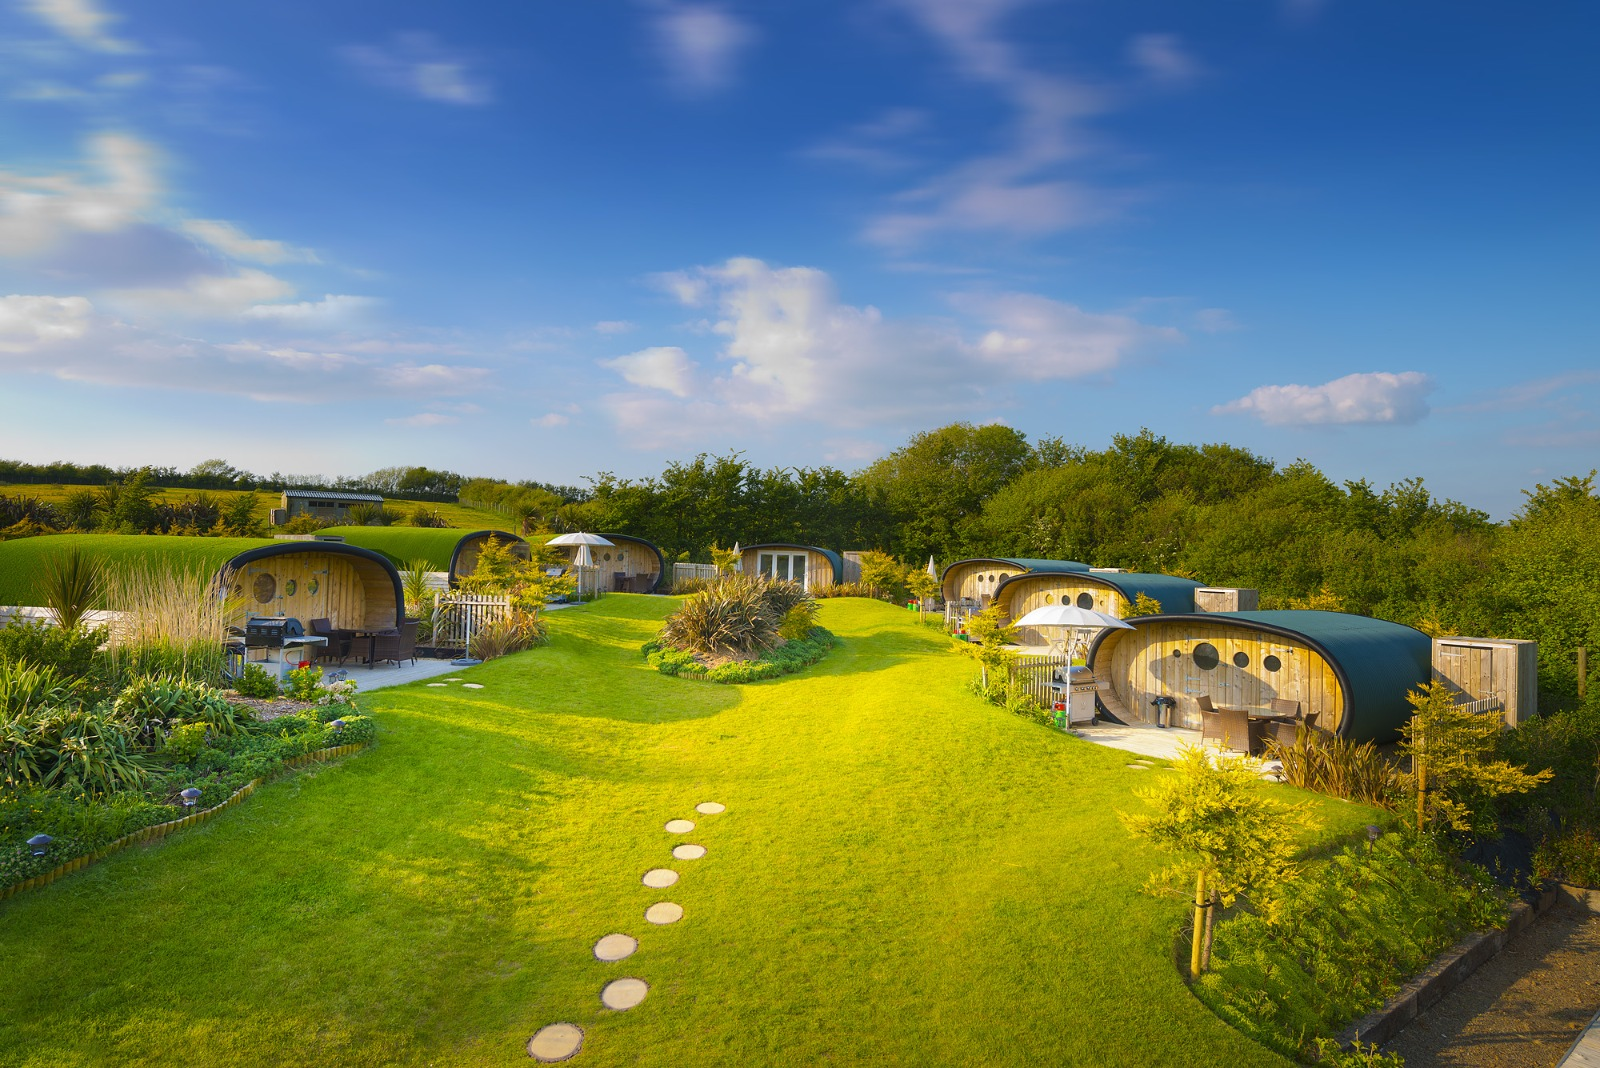 One of our farm campsites, Atlantic Surf Pods in Bude